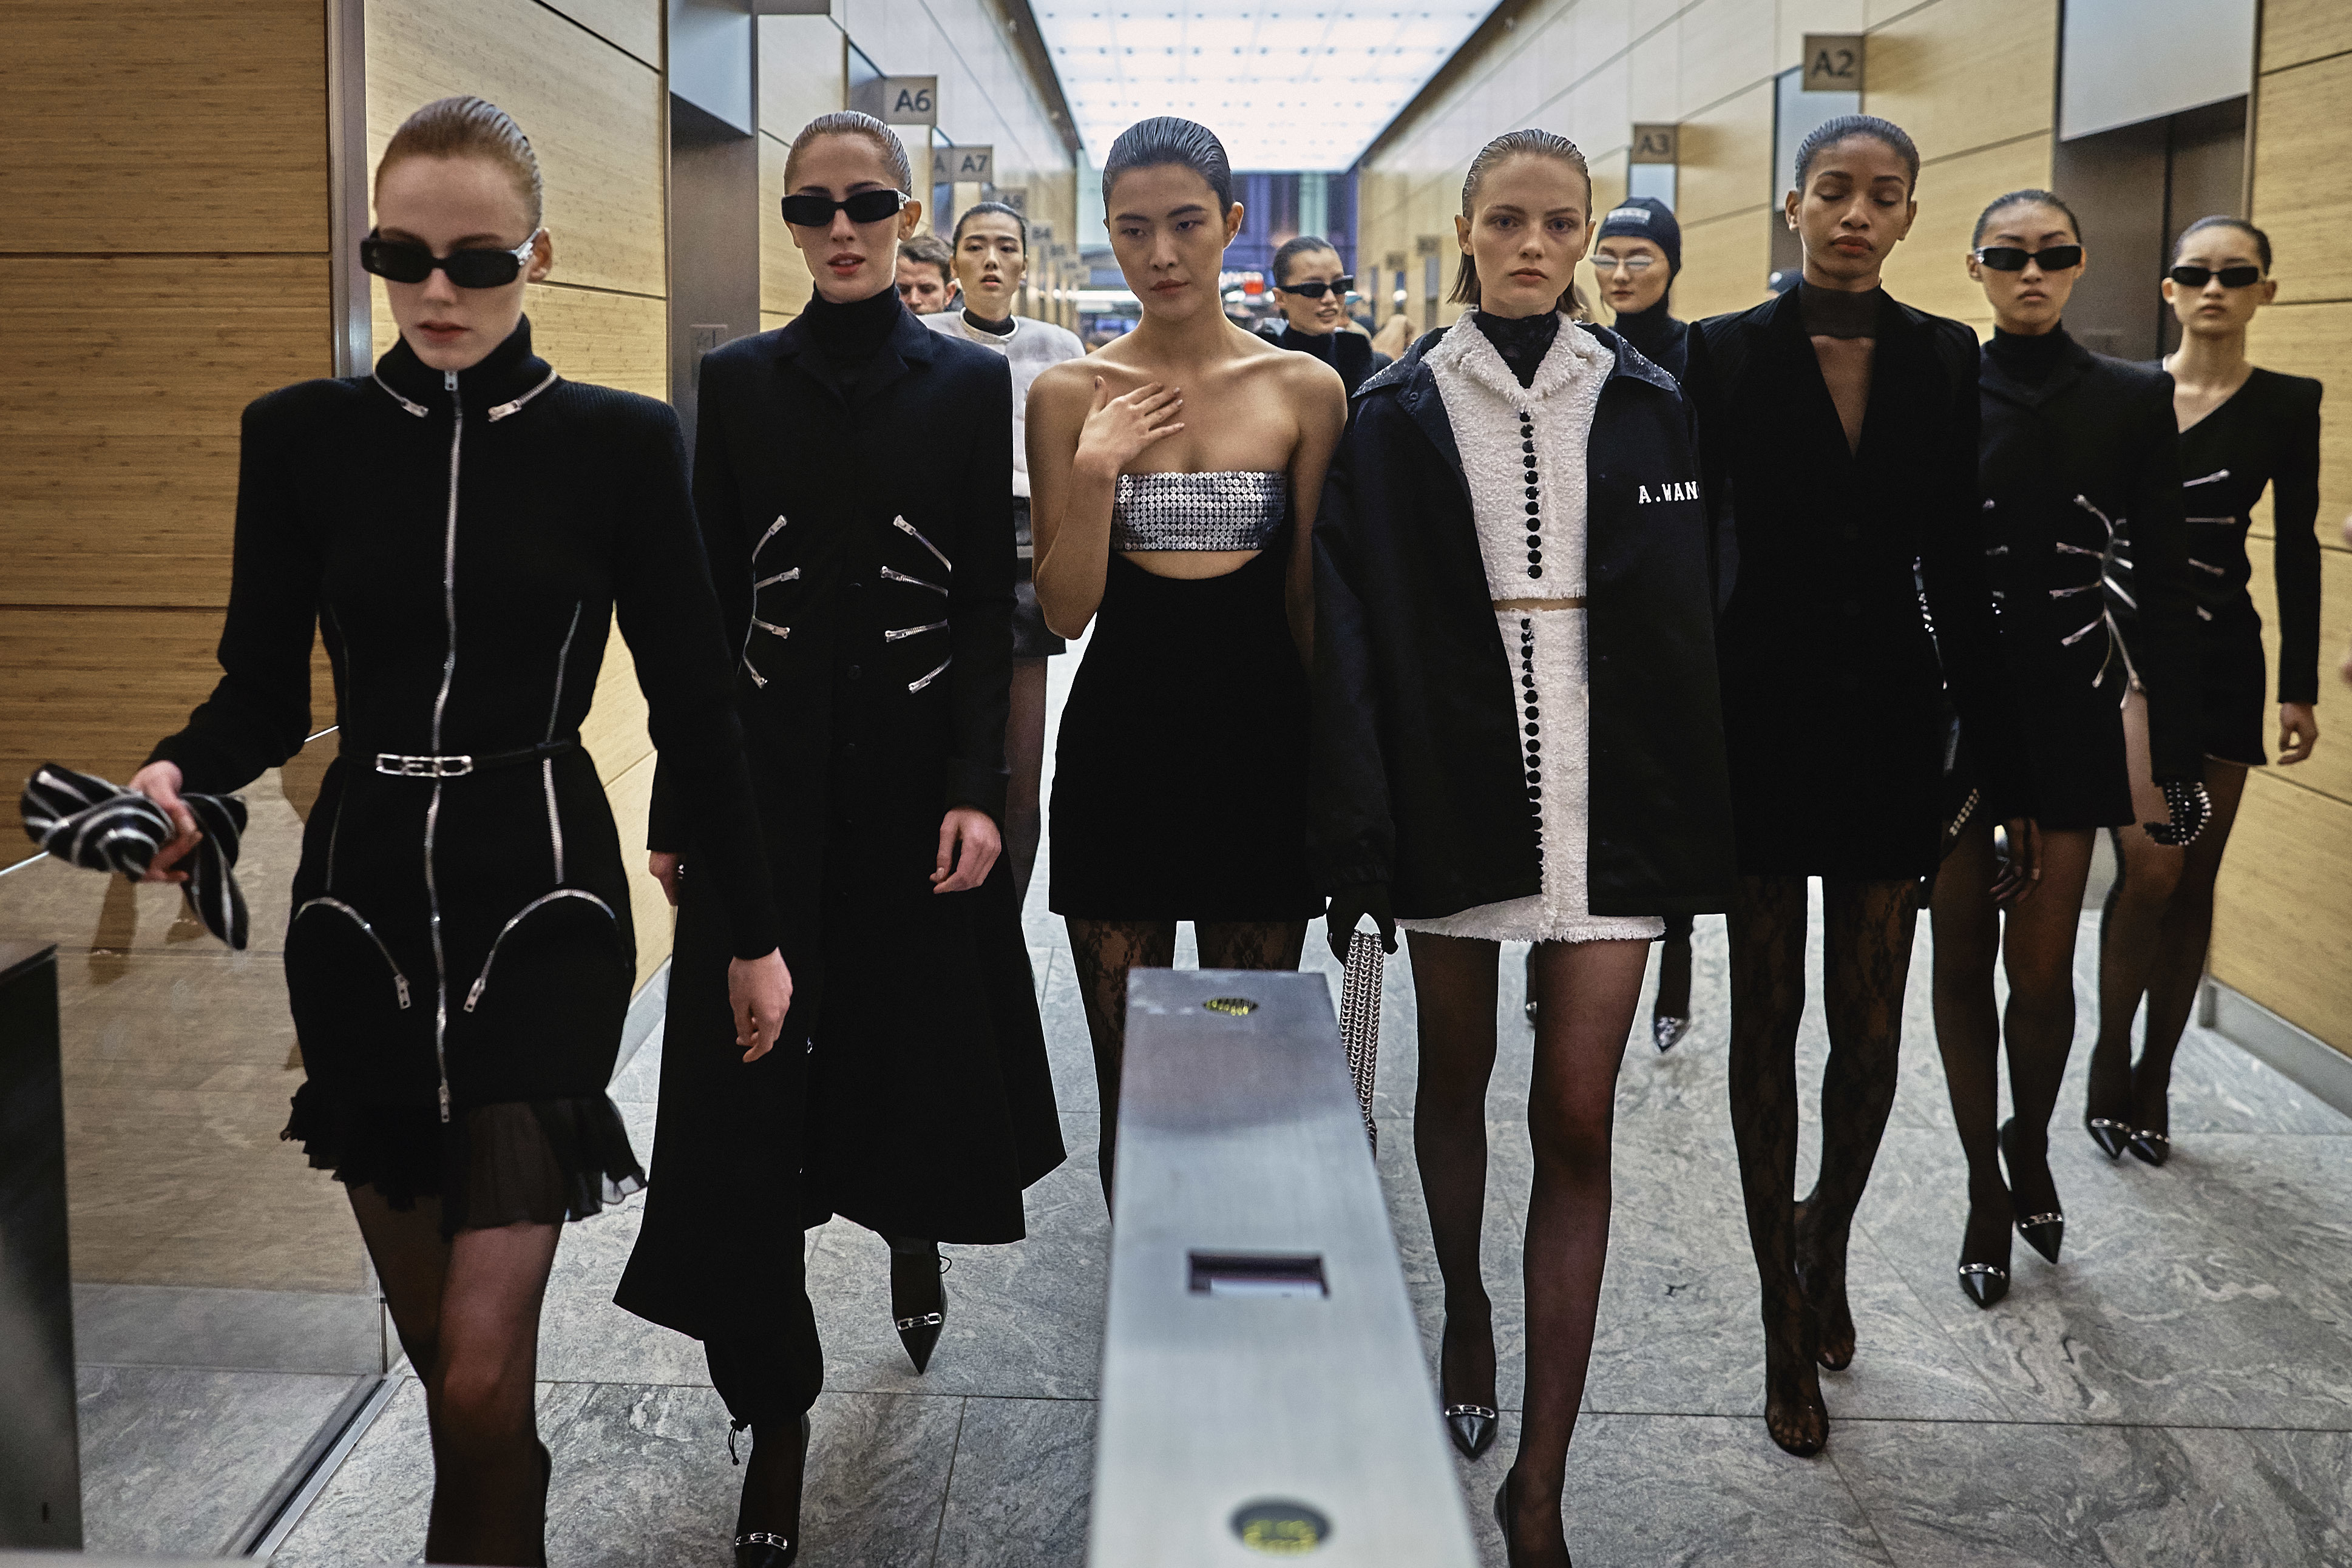 Models wearing the Alexander Wang collection walk to the street as part of the show during Fashion Week in New York (Andres Kudacki/AP)